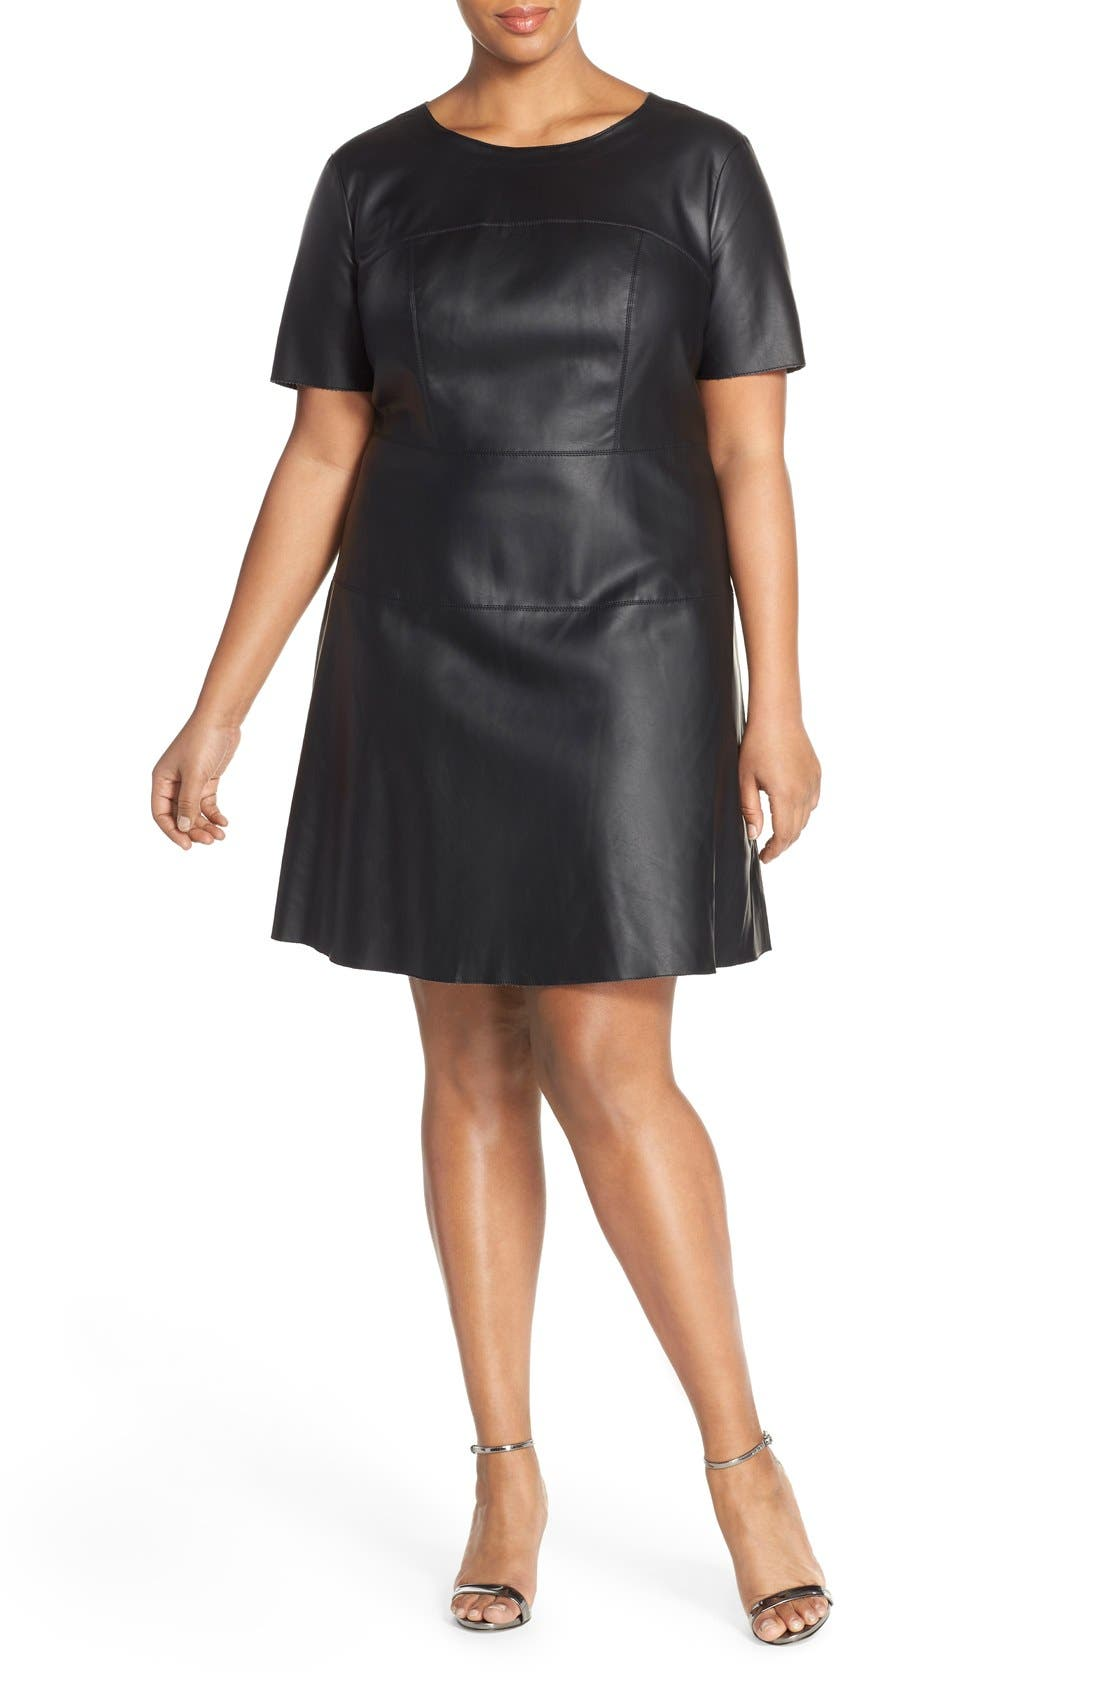 Tart 'Carla' Faux Leather Fit & Flare Dress (Plus Size)